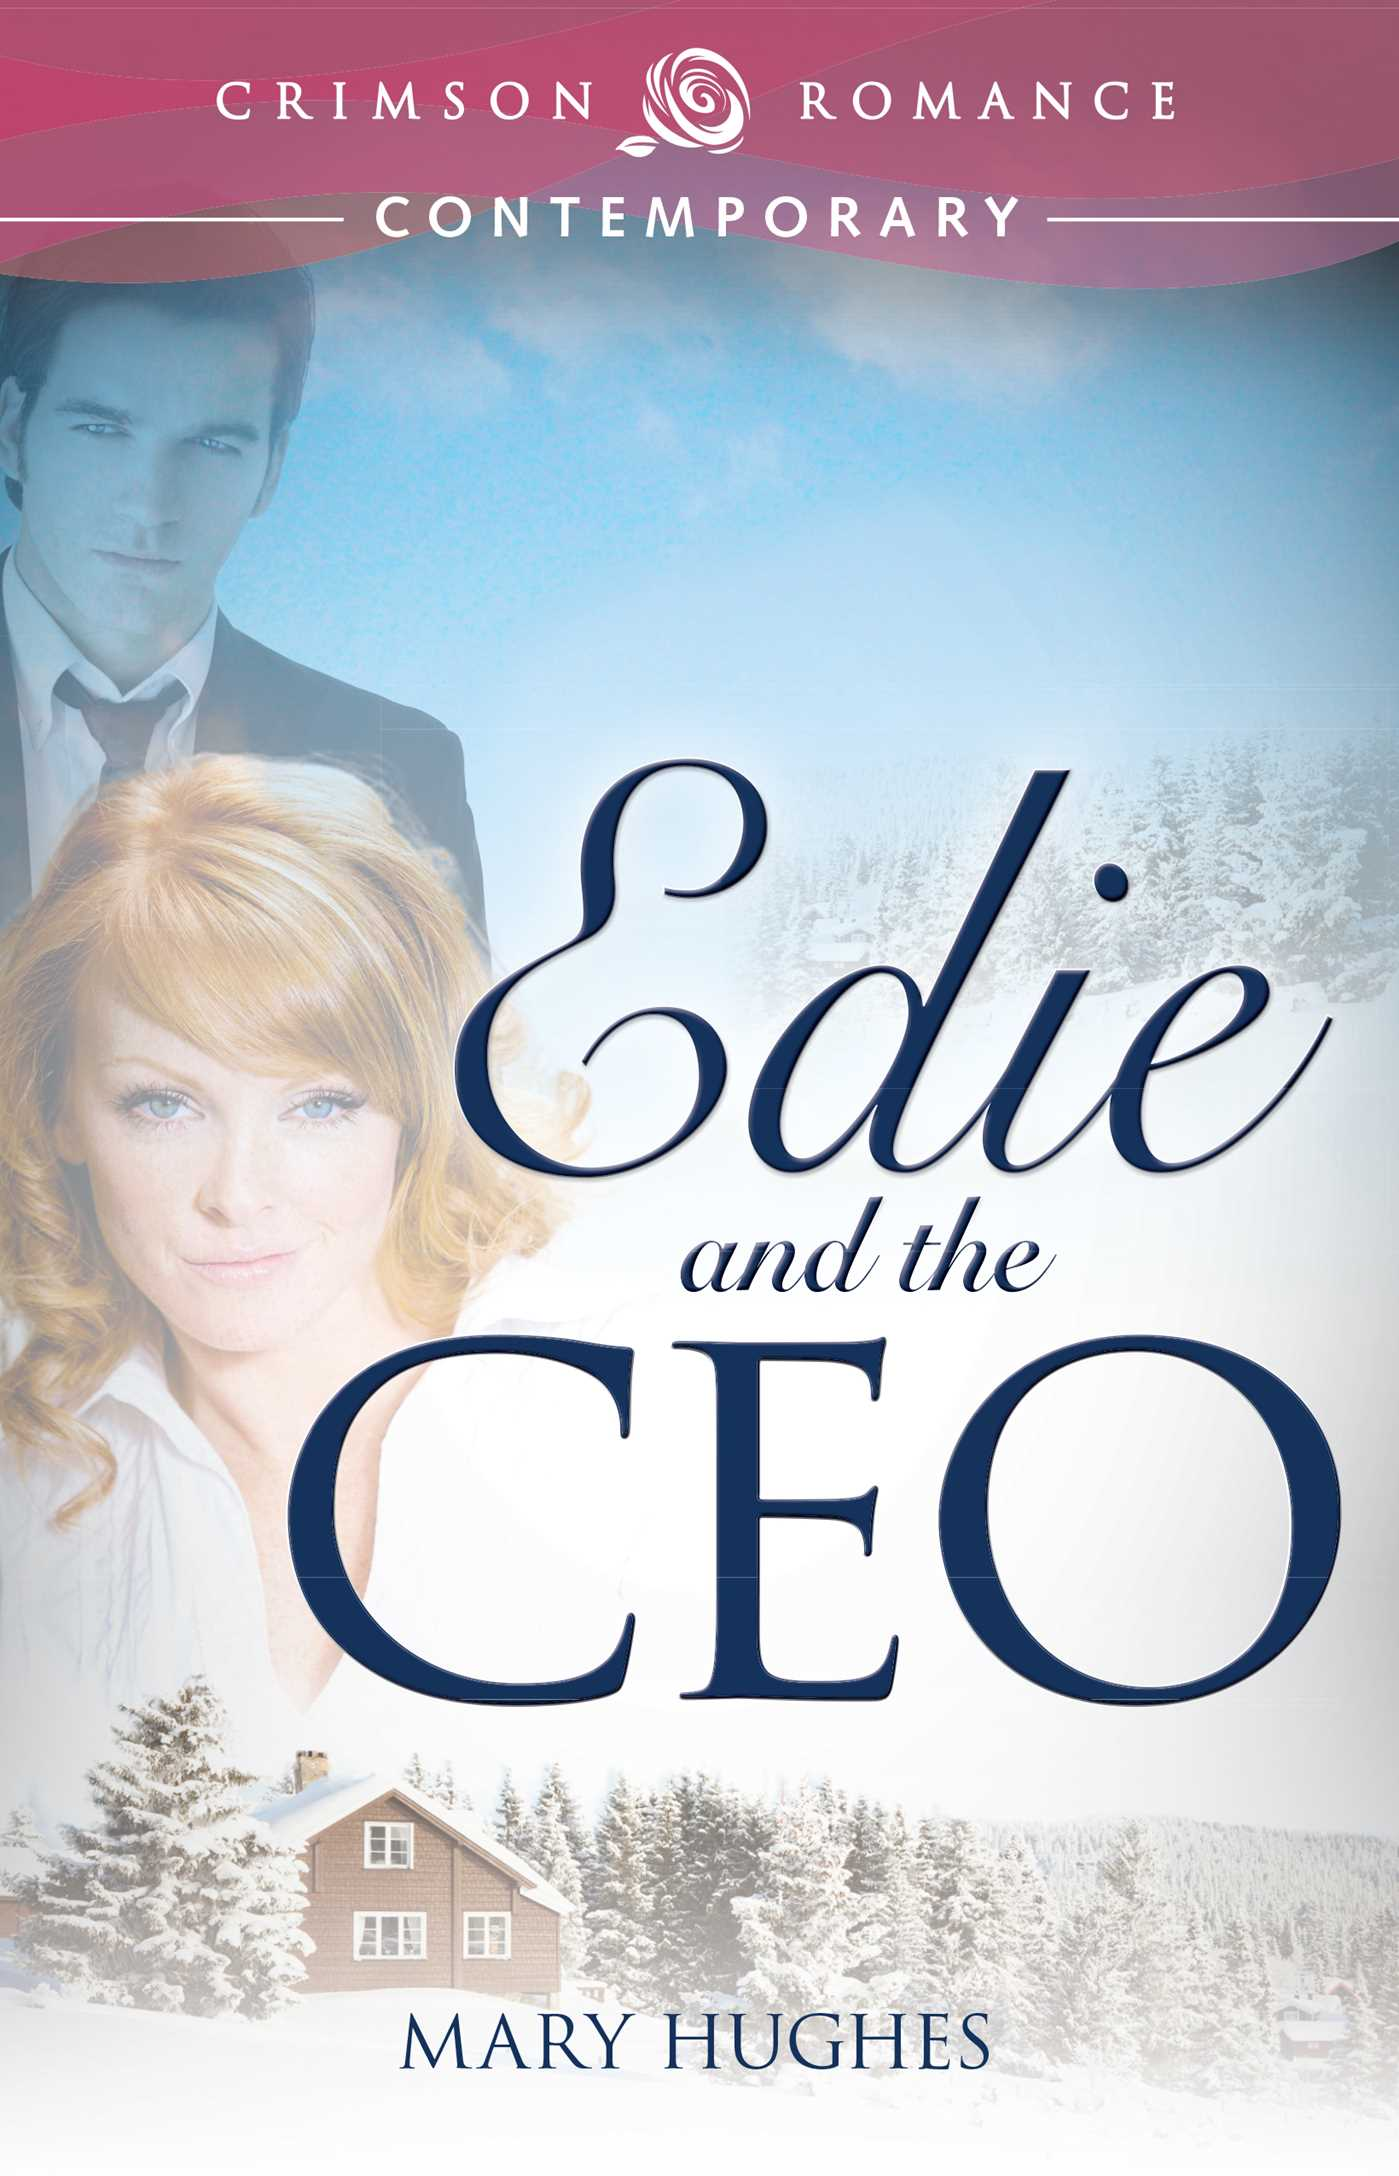 Edie and the ceo 9781440564307 hr